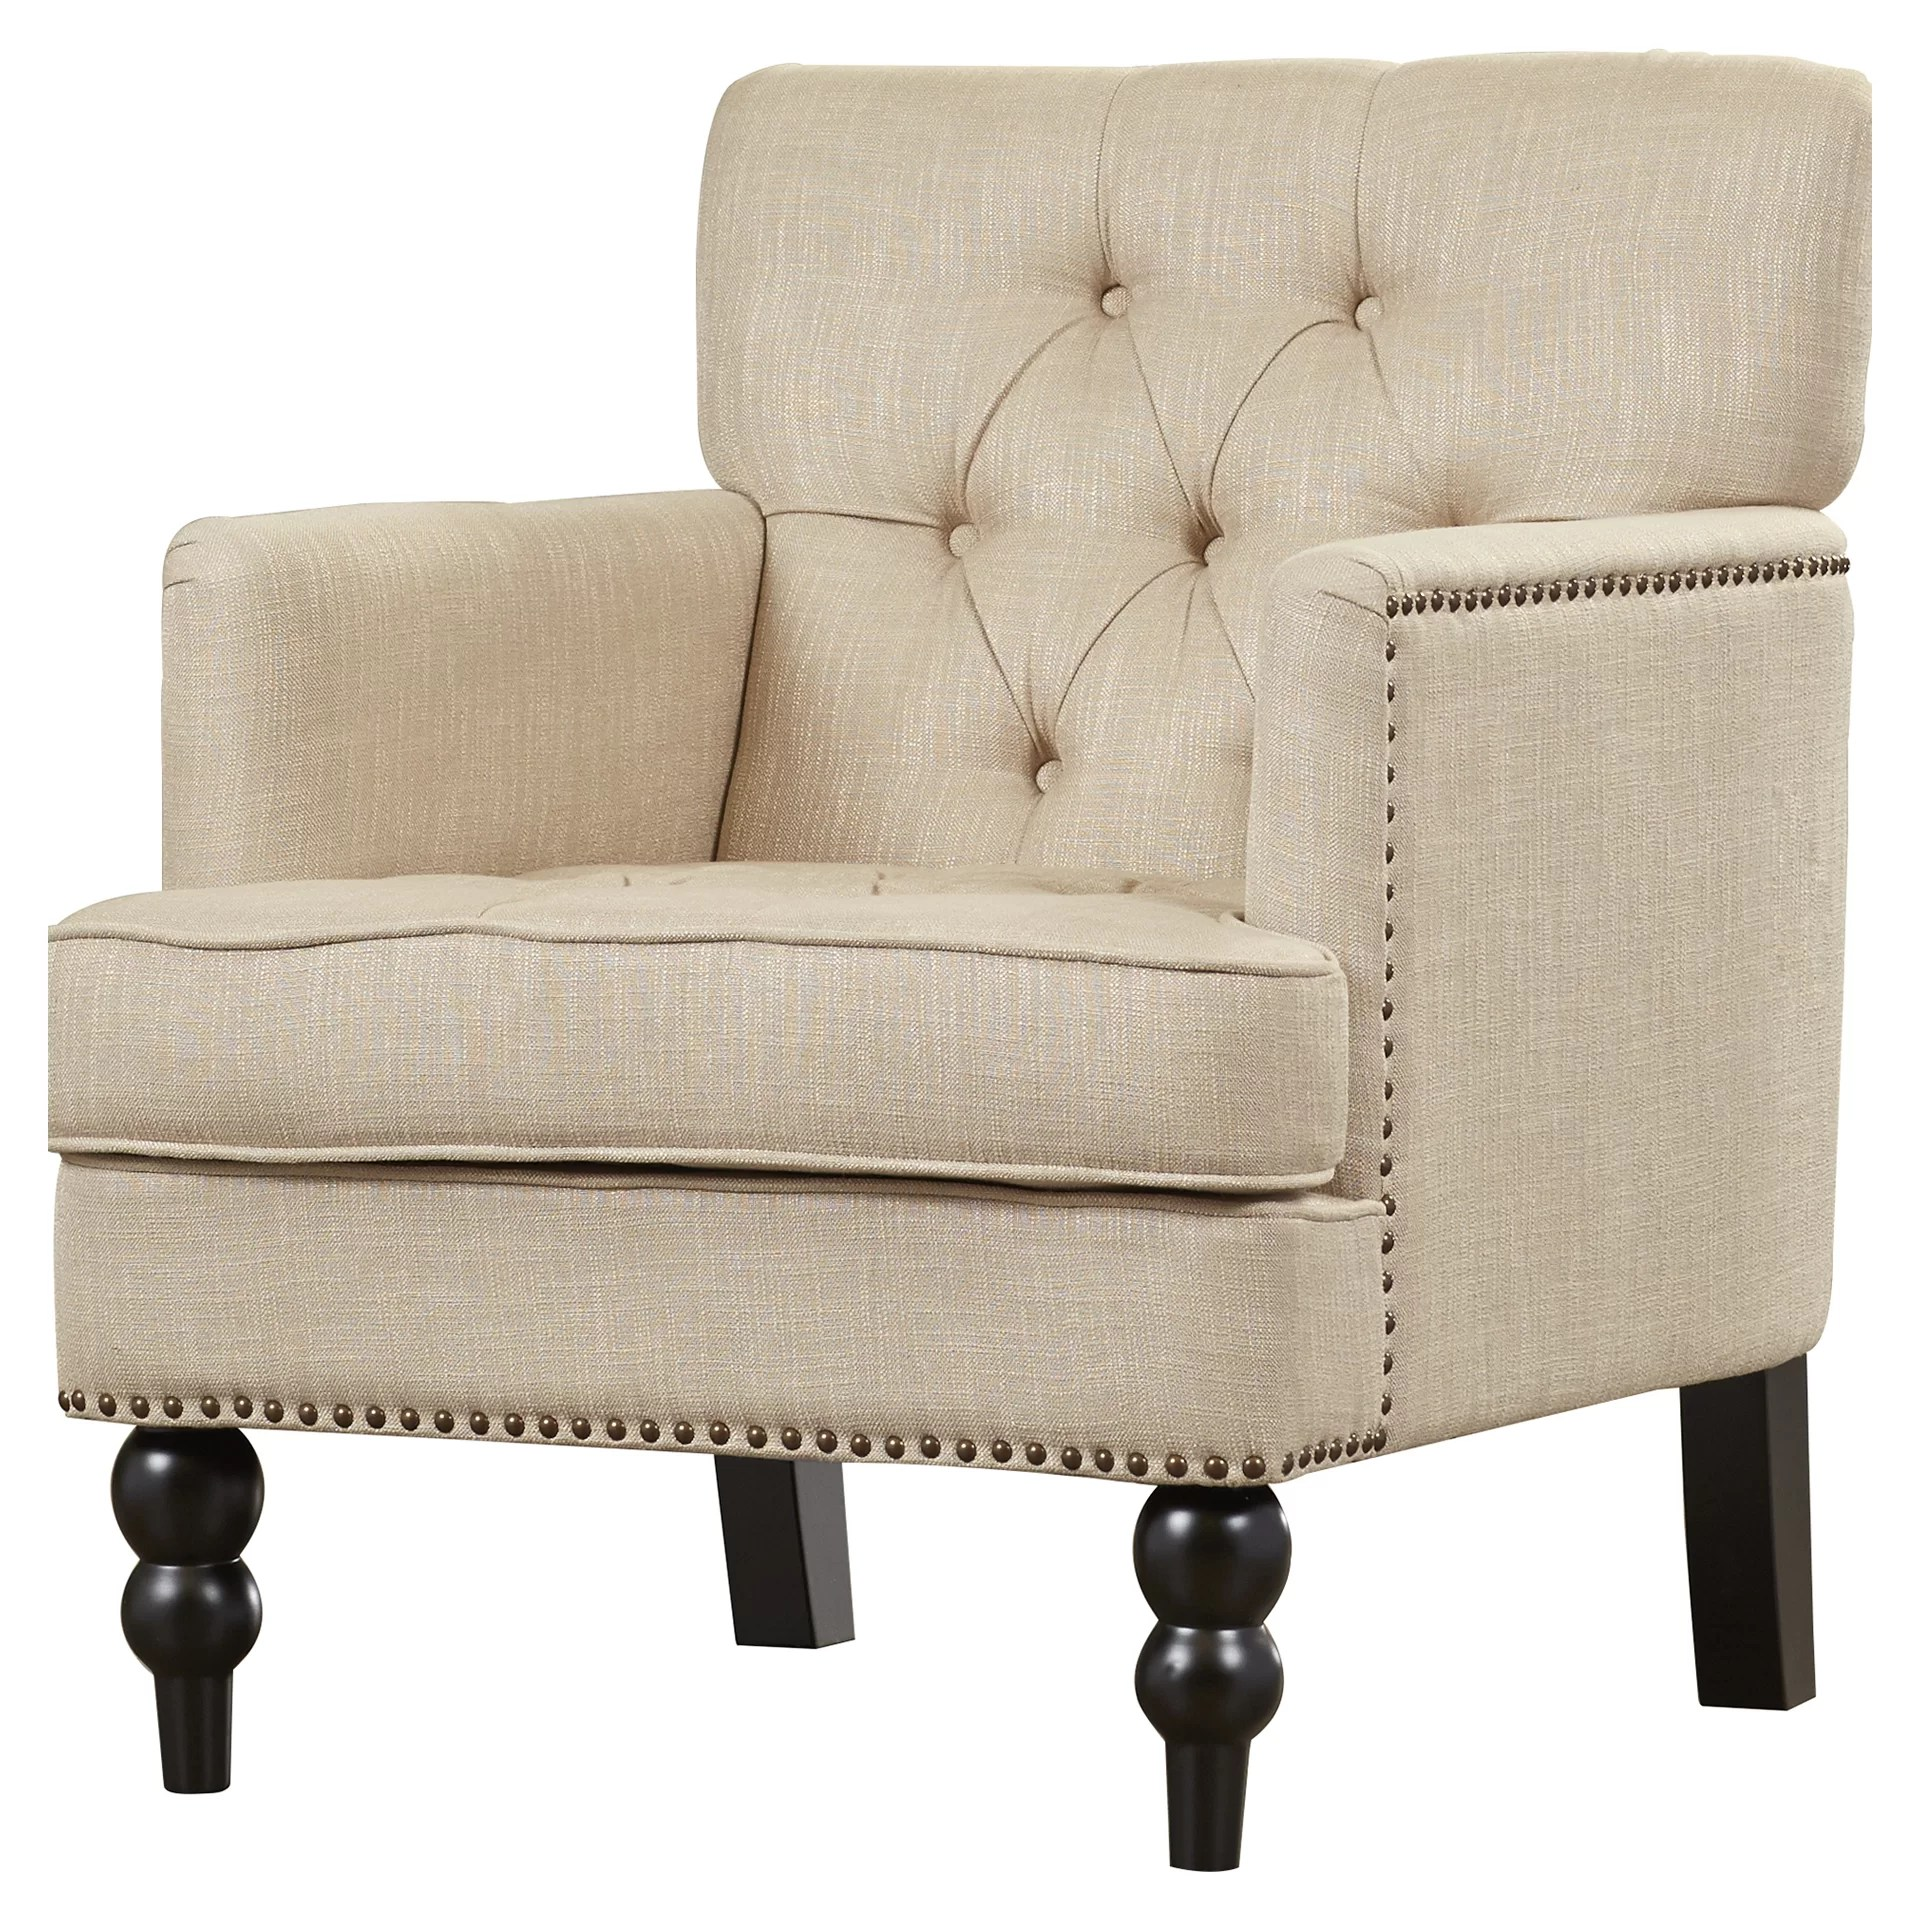 Upholstered Accent Chairs With Arms Alcott Hill Summerfield Tufted Upholstered Club Arm Chair